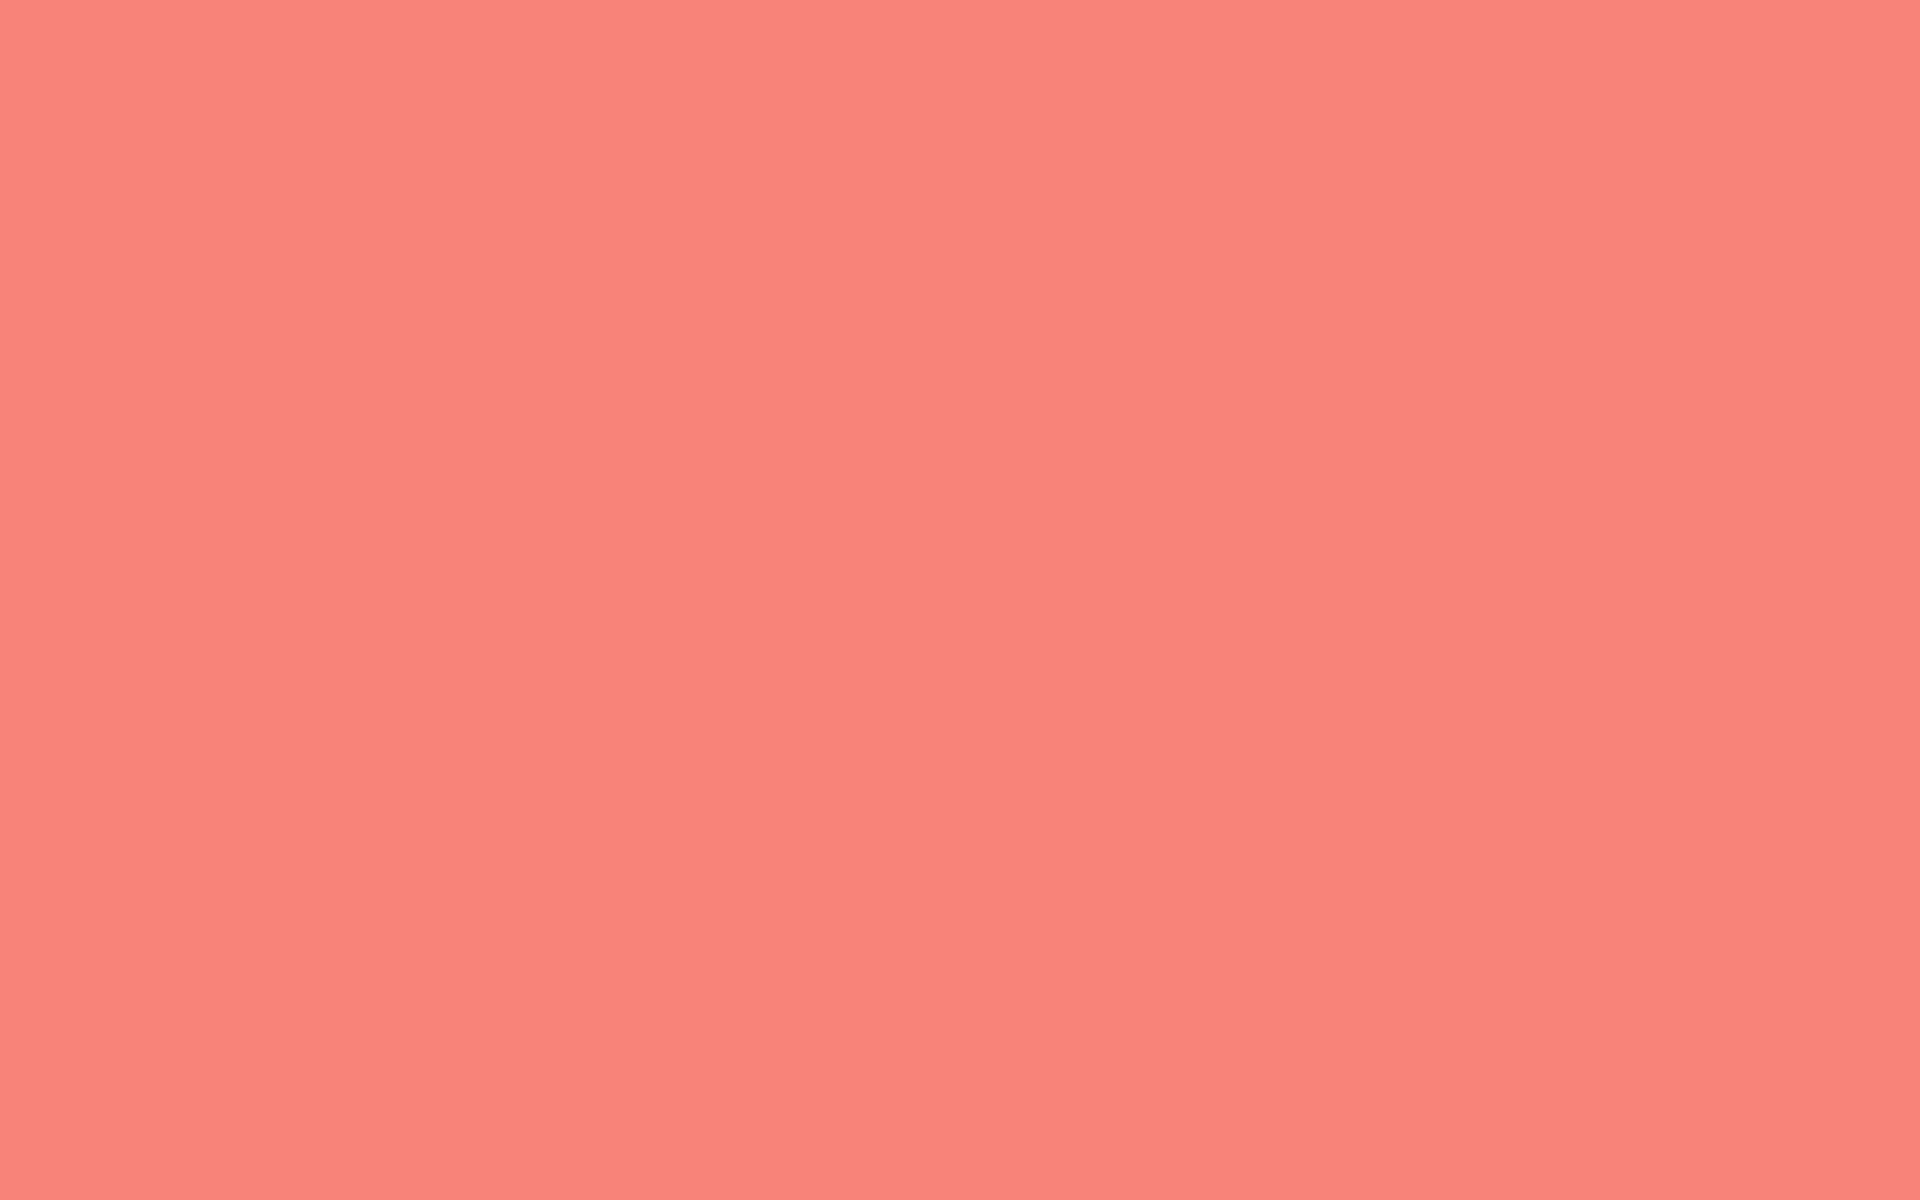 1920x1200 Congo Pink Solid Color Background